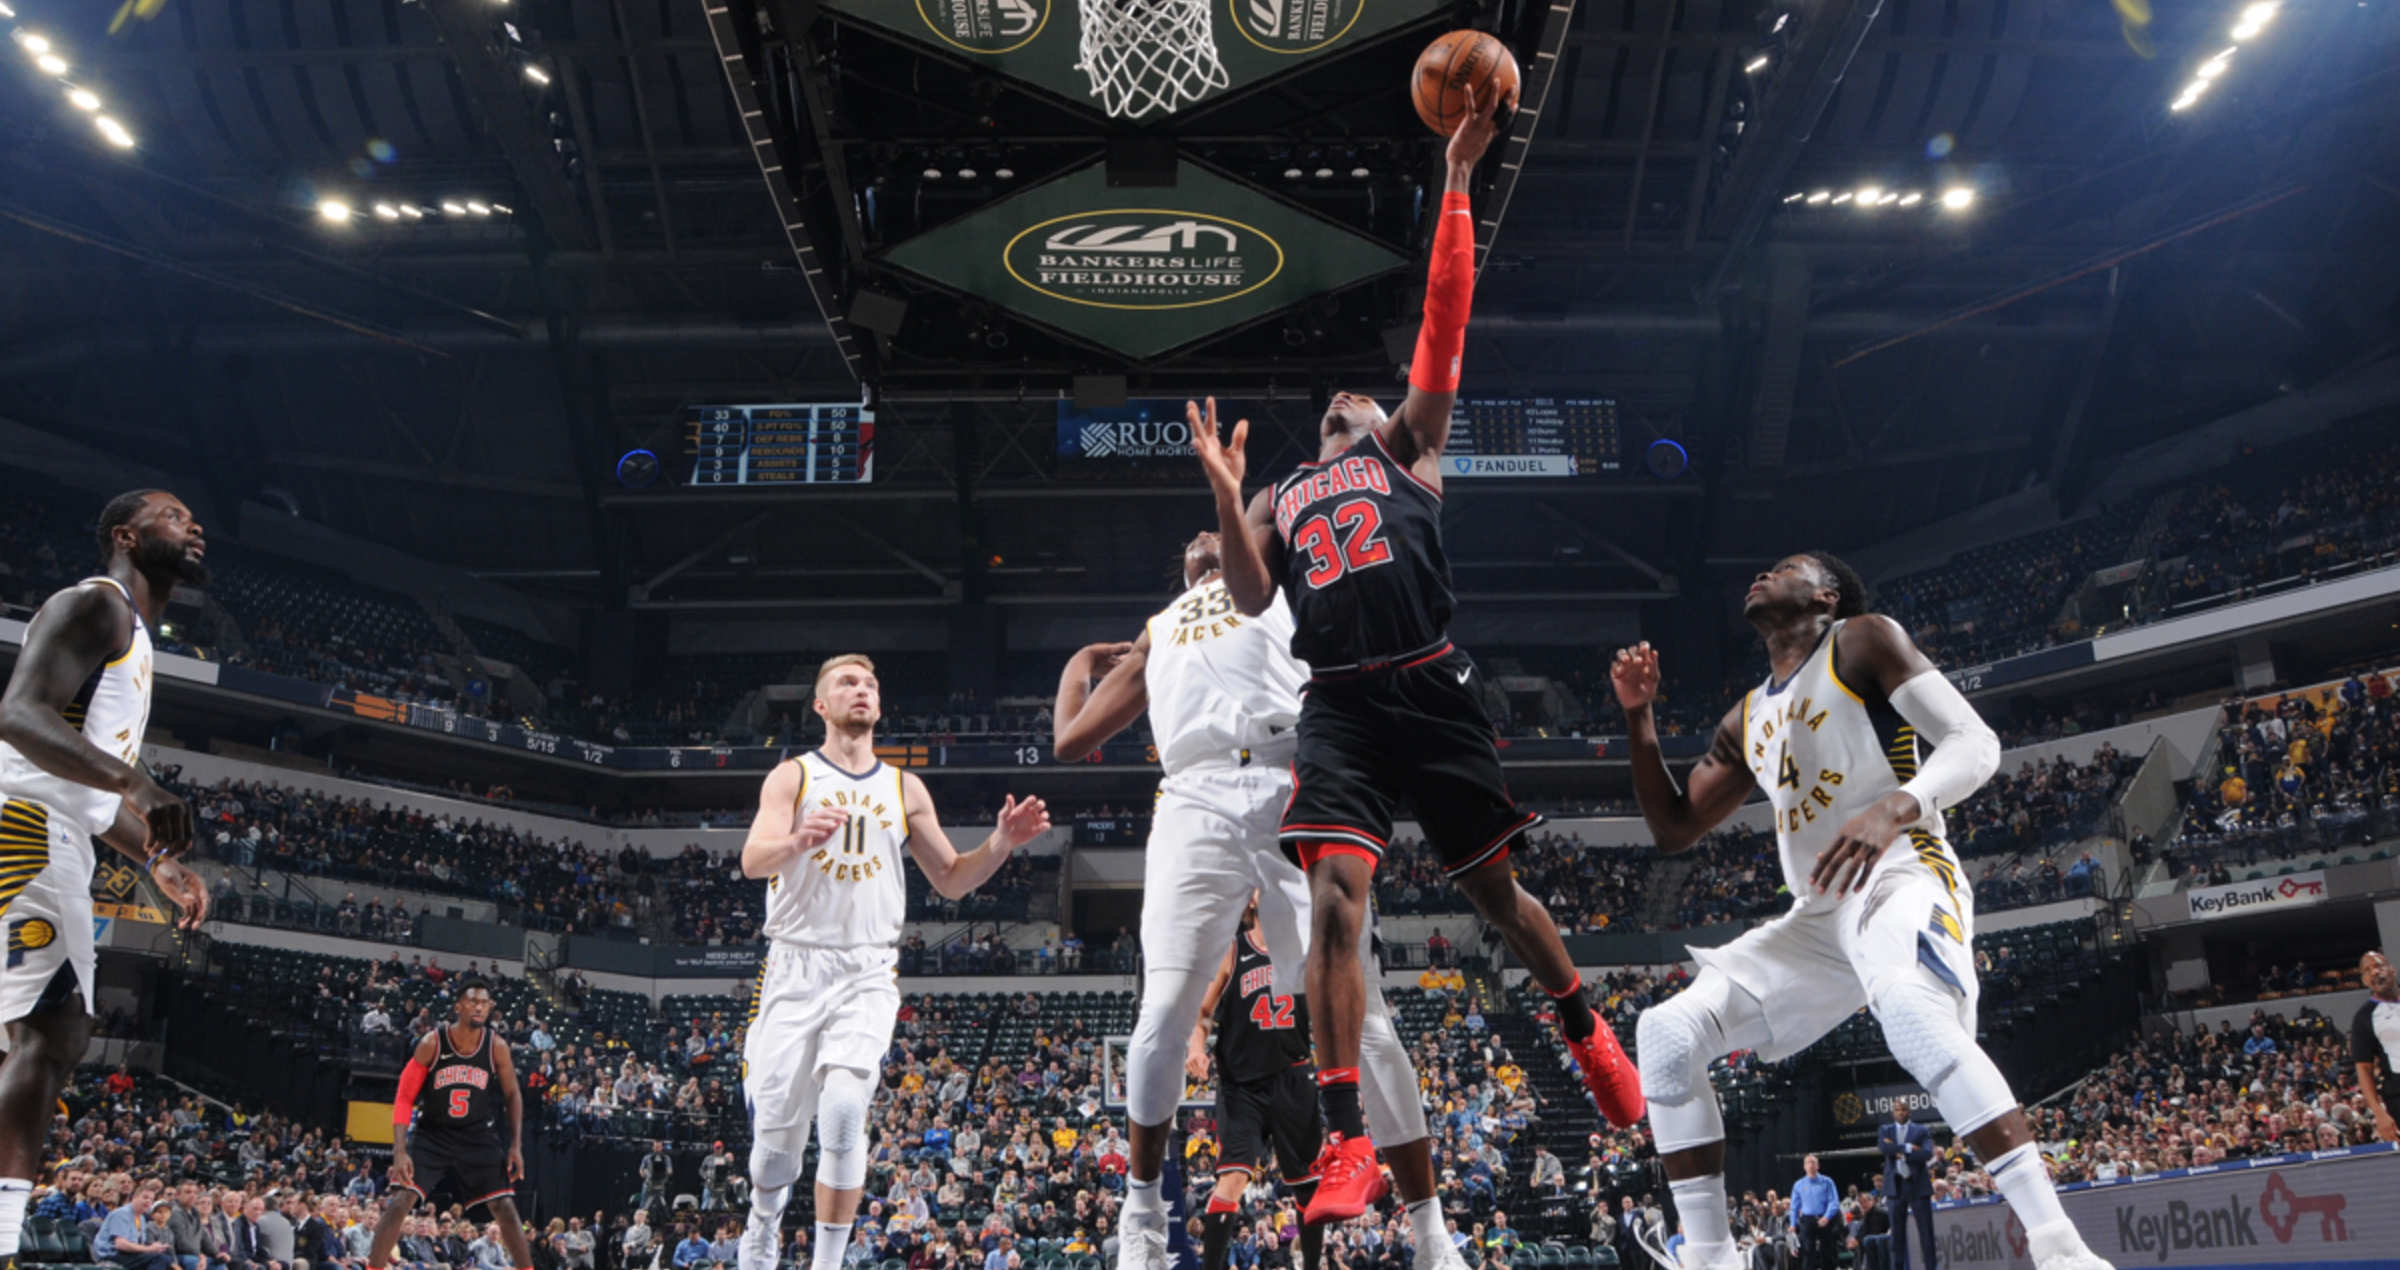 Kris Dunn lays up the ball against the Indiana Pacers